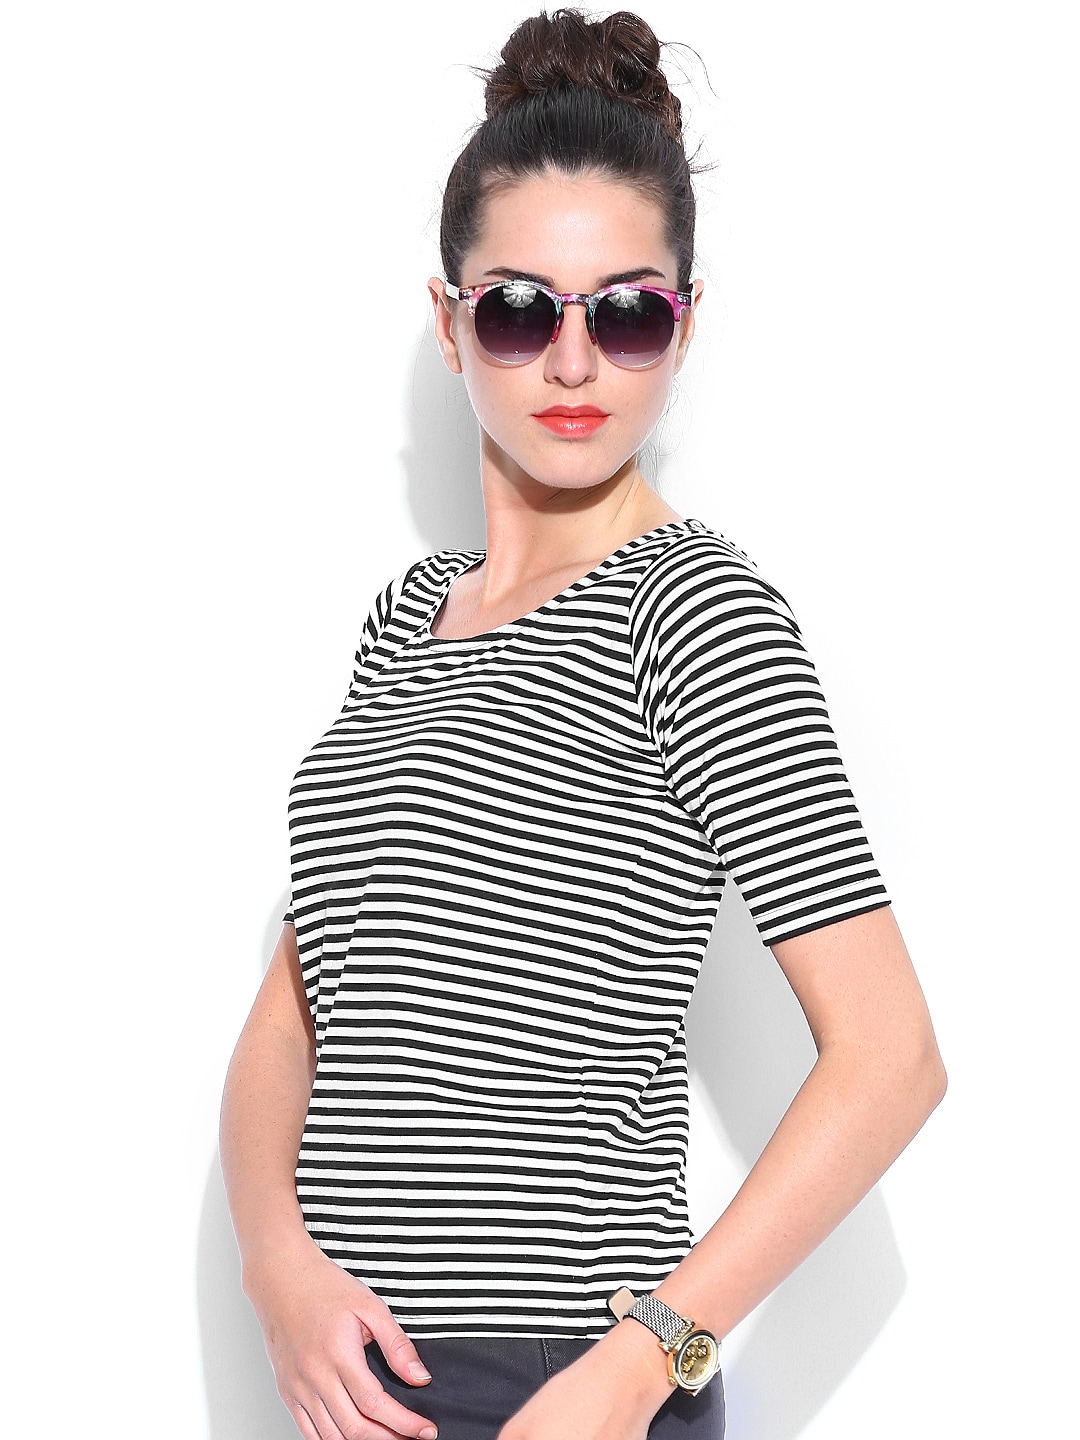 Black and white striped t shirt xxl - Black And White Striped T Shirt Xxl 25